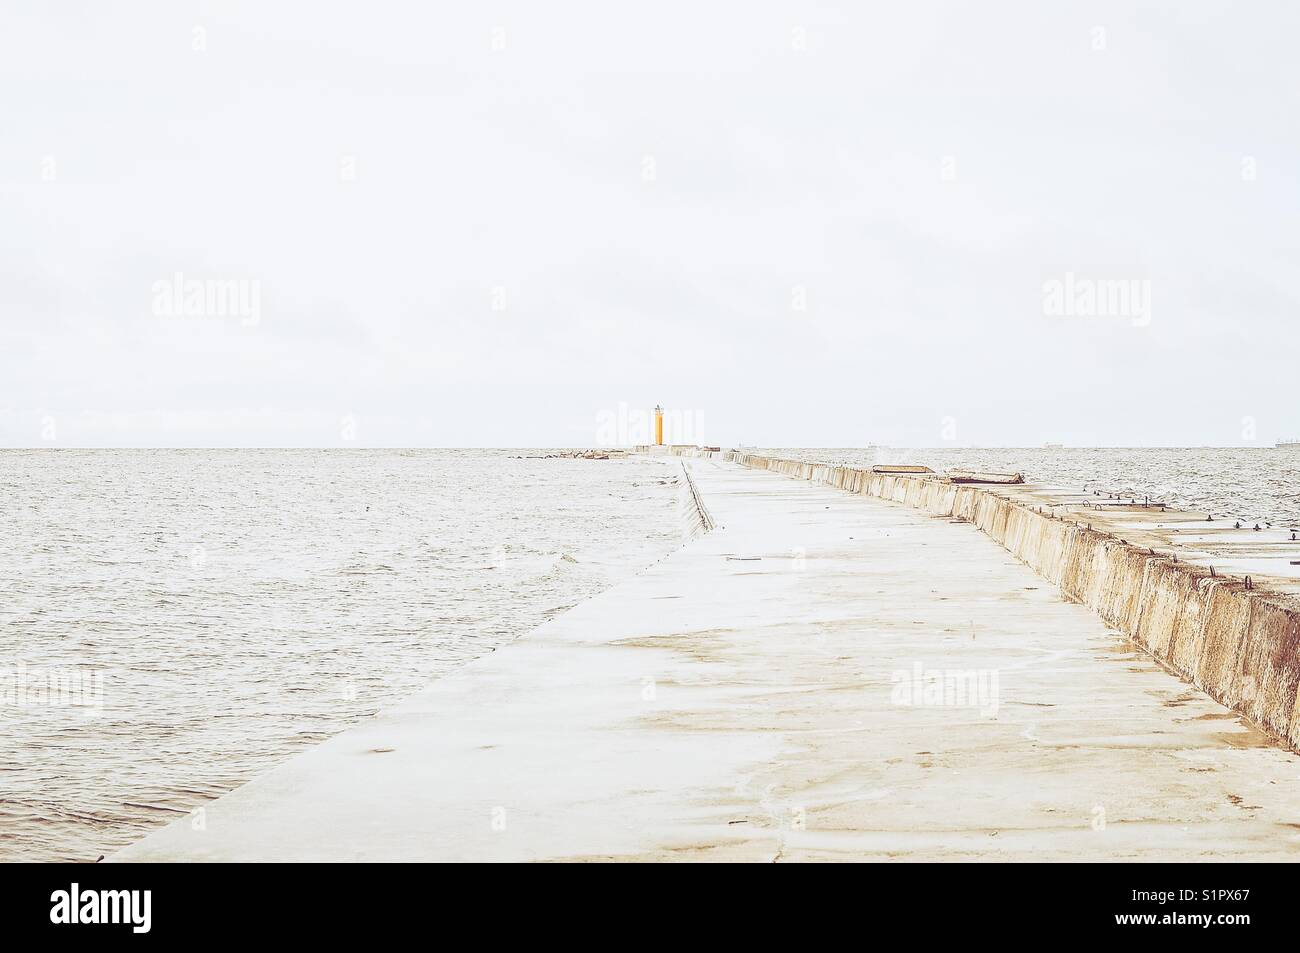 A lighthouse far away in sea. - Stock Image